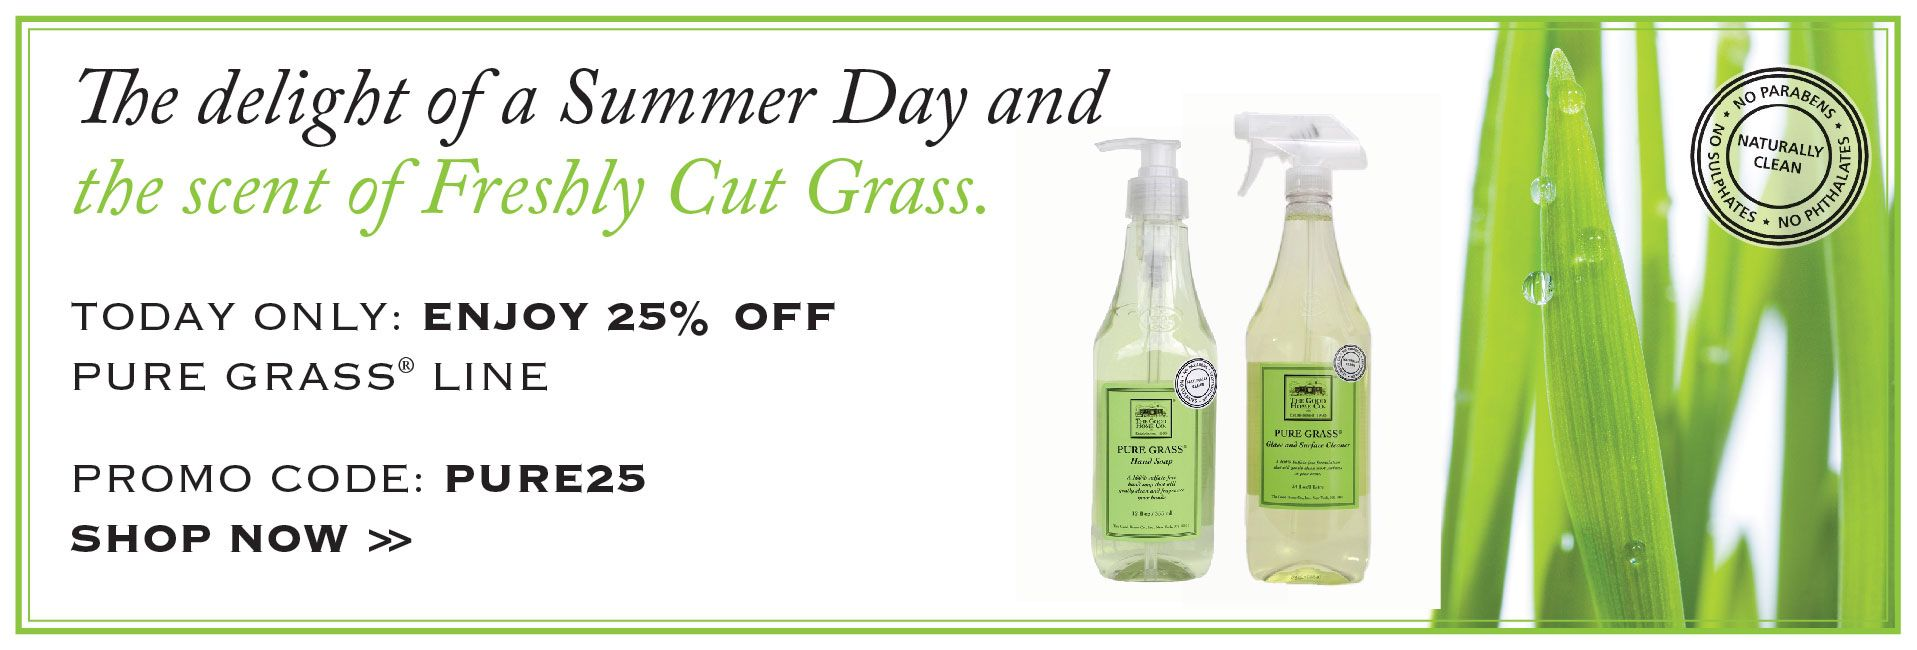 One day only 8/7/2013 - enjoy 25% off all Pure Grass products with ...